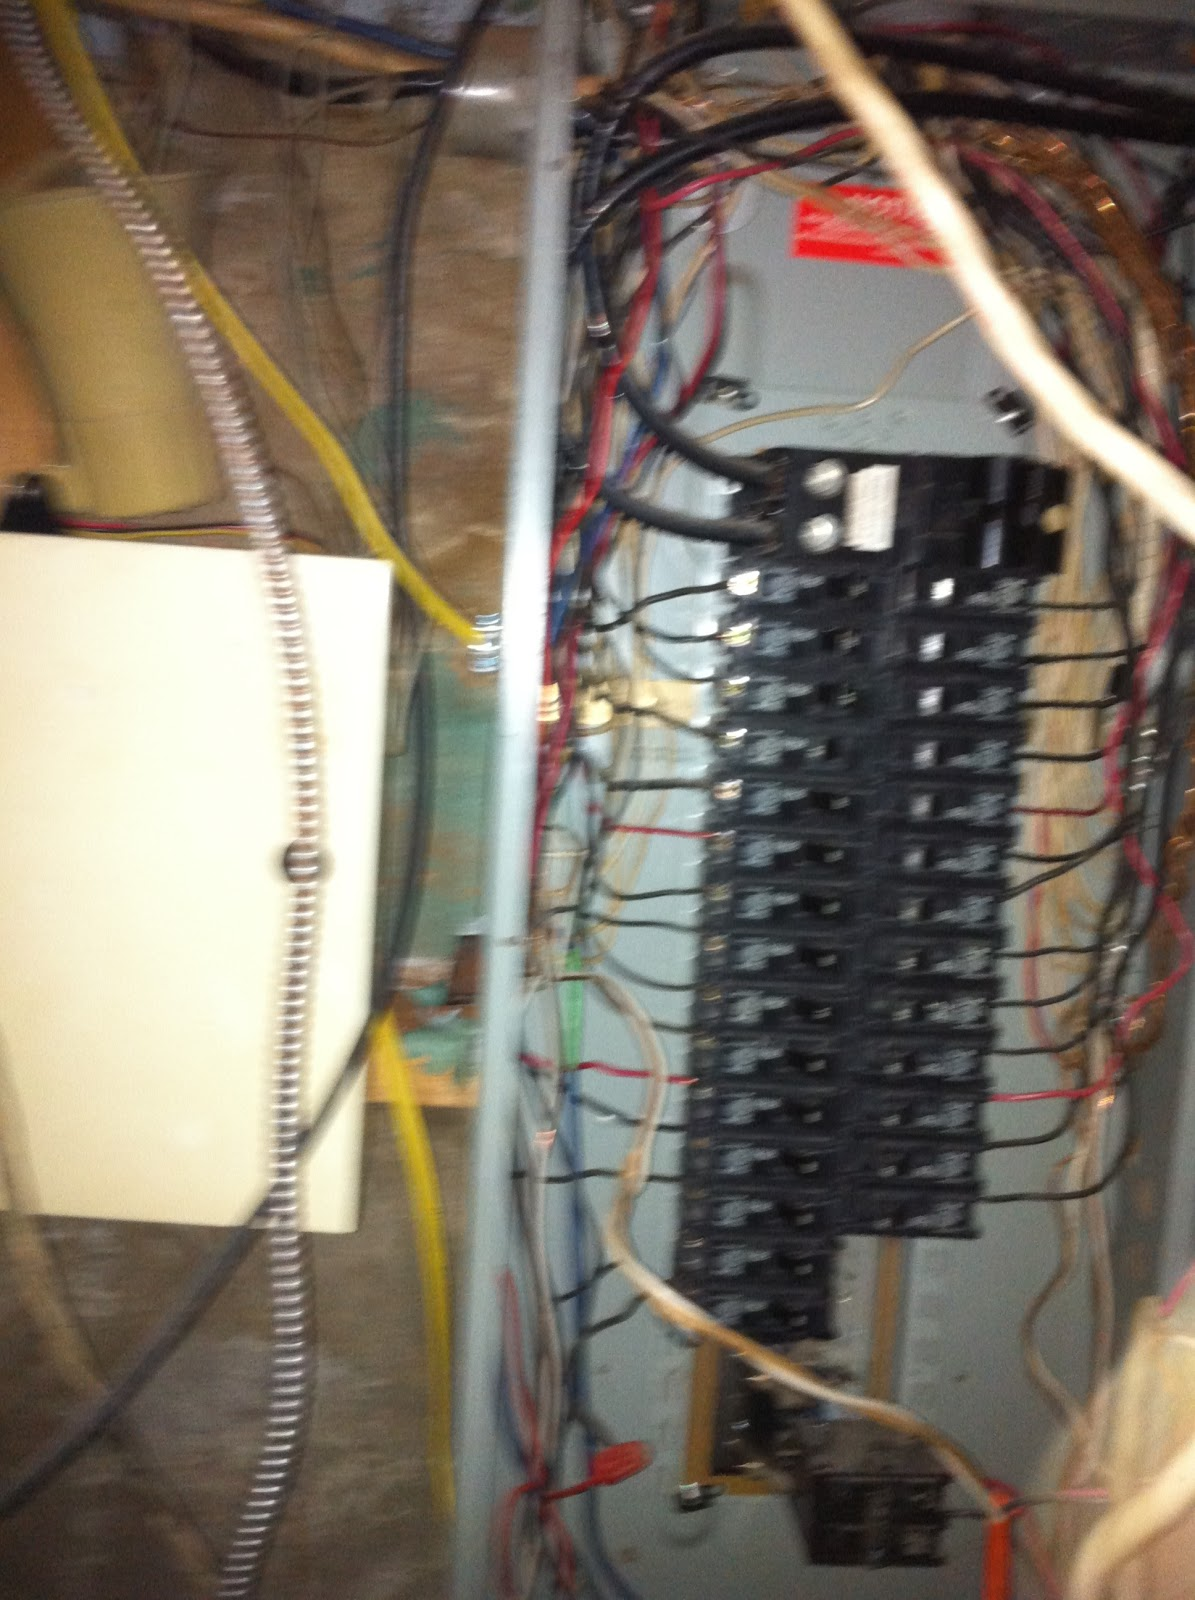 GEN3 Electric (215) 352-5963: Bank owned property needing to be